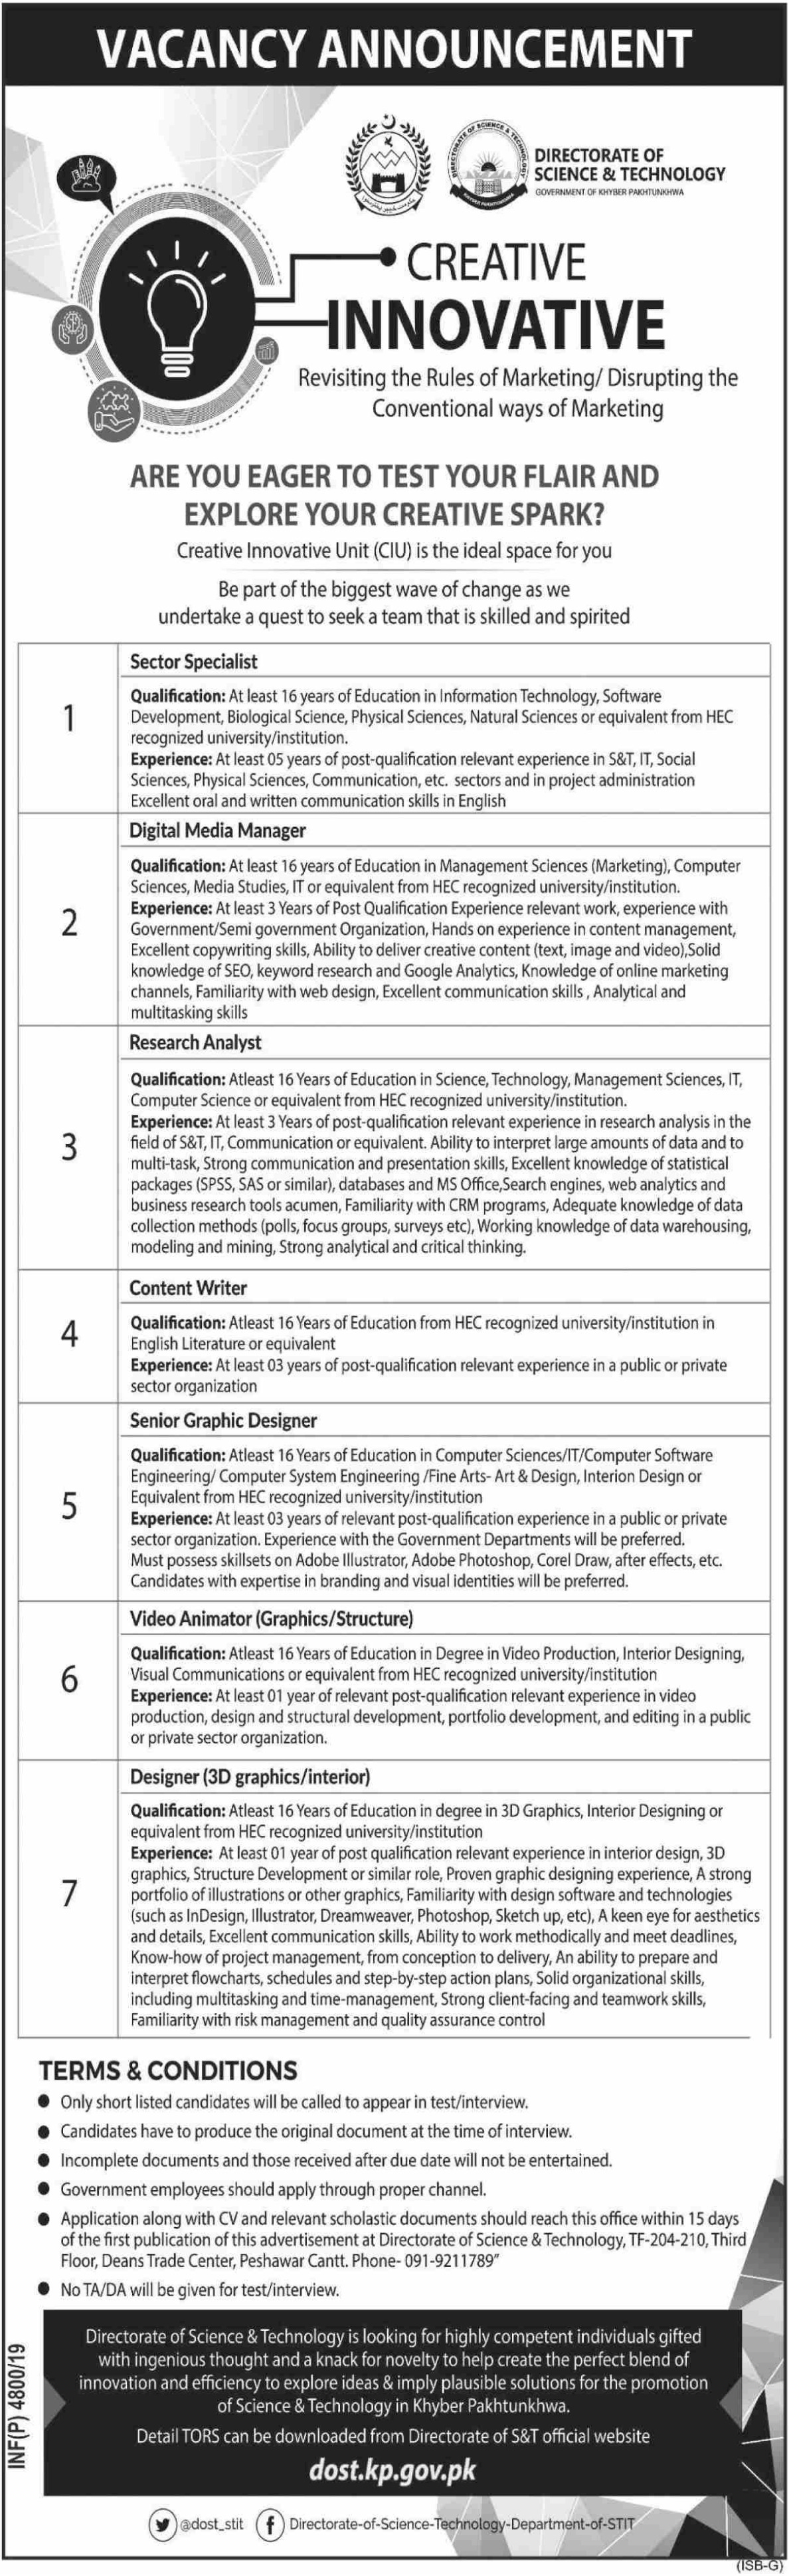 Directorate of Science & Technology KPK Jobs 2019 Government of Khyber Pakhtunkhwa